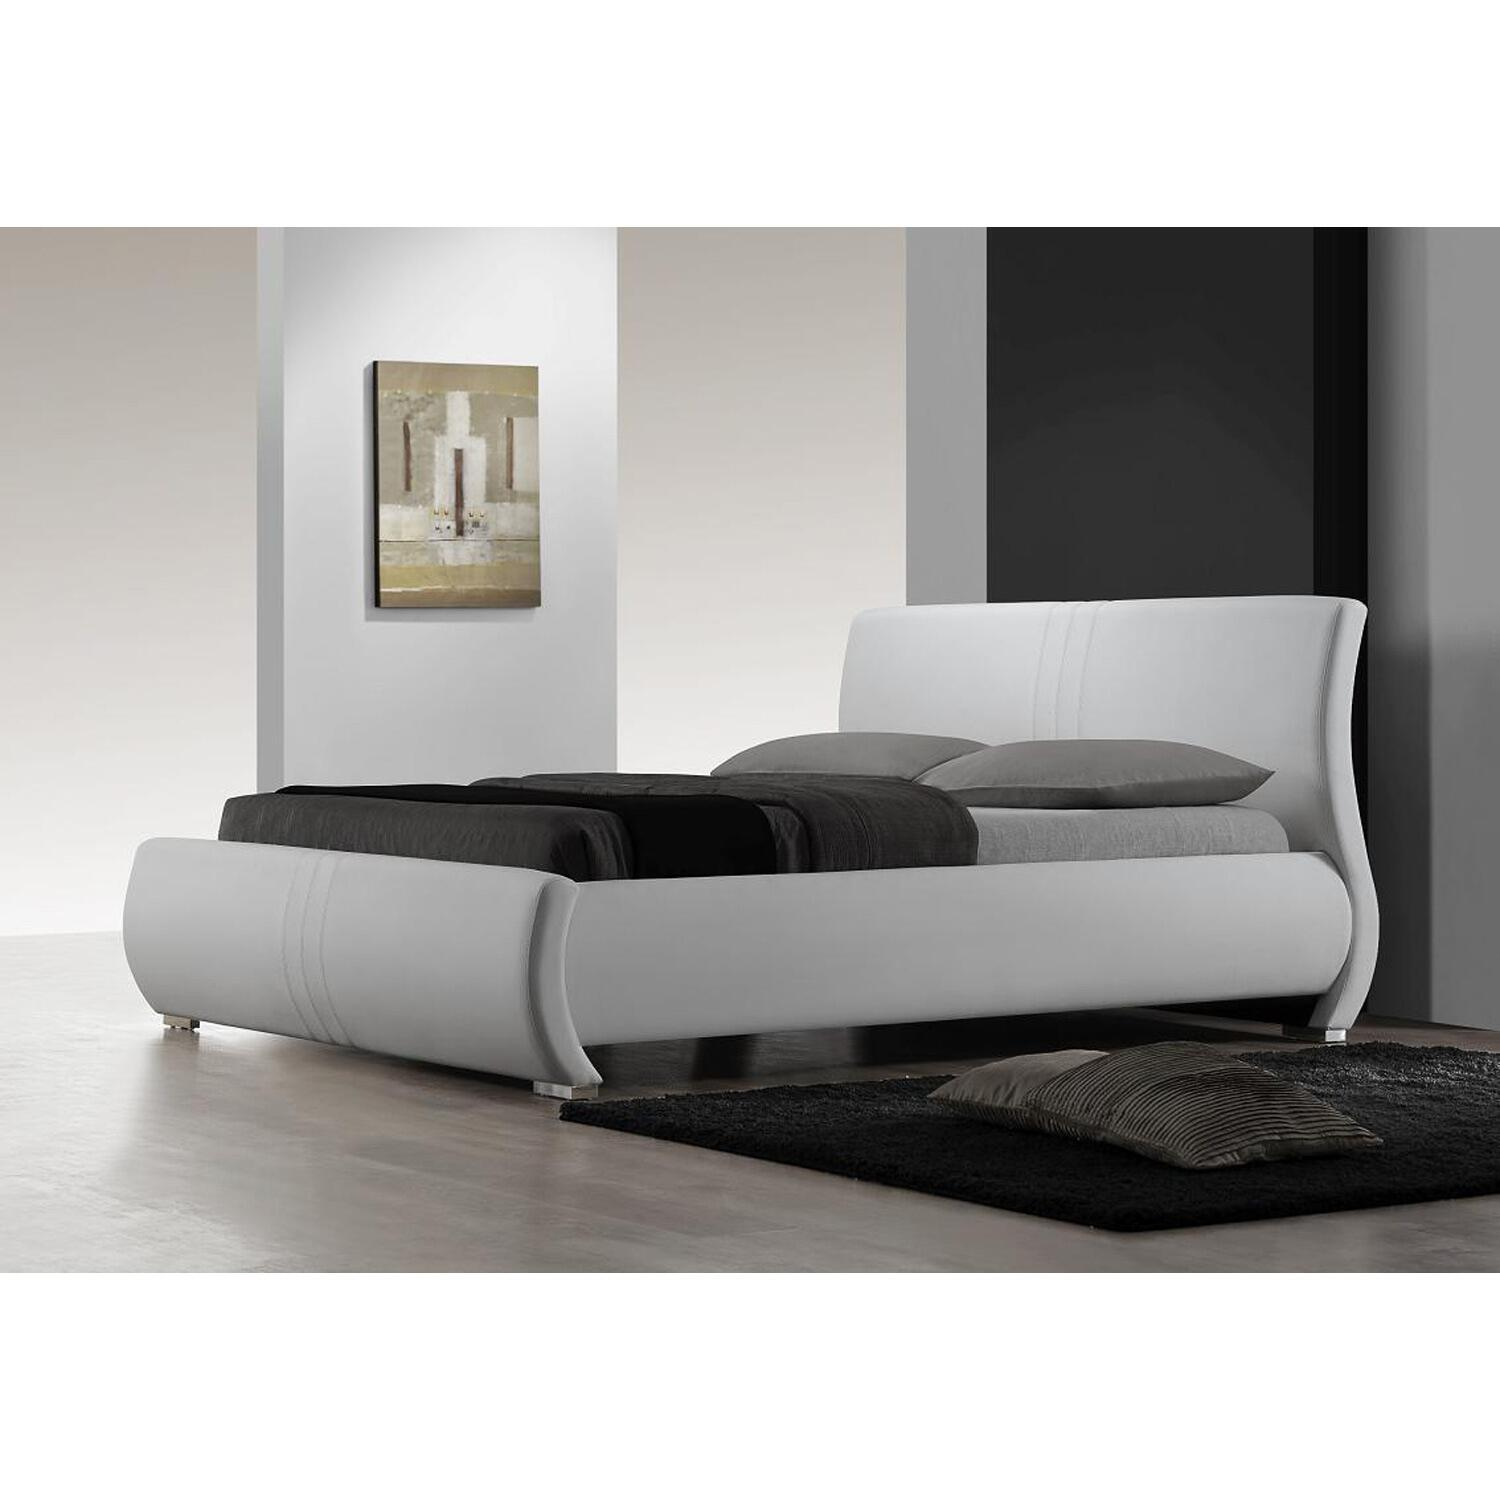 Modern king size bed frames - White Leather Modern King Size Bed Frame